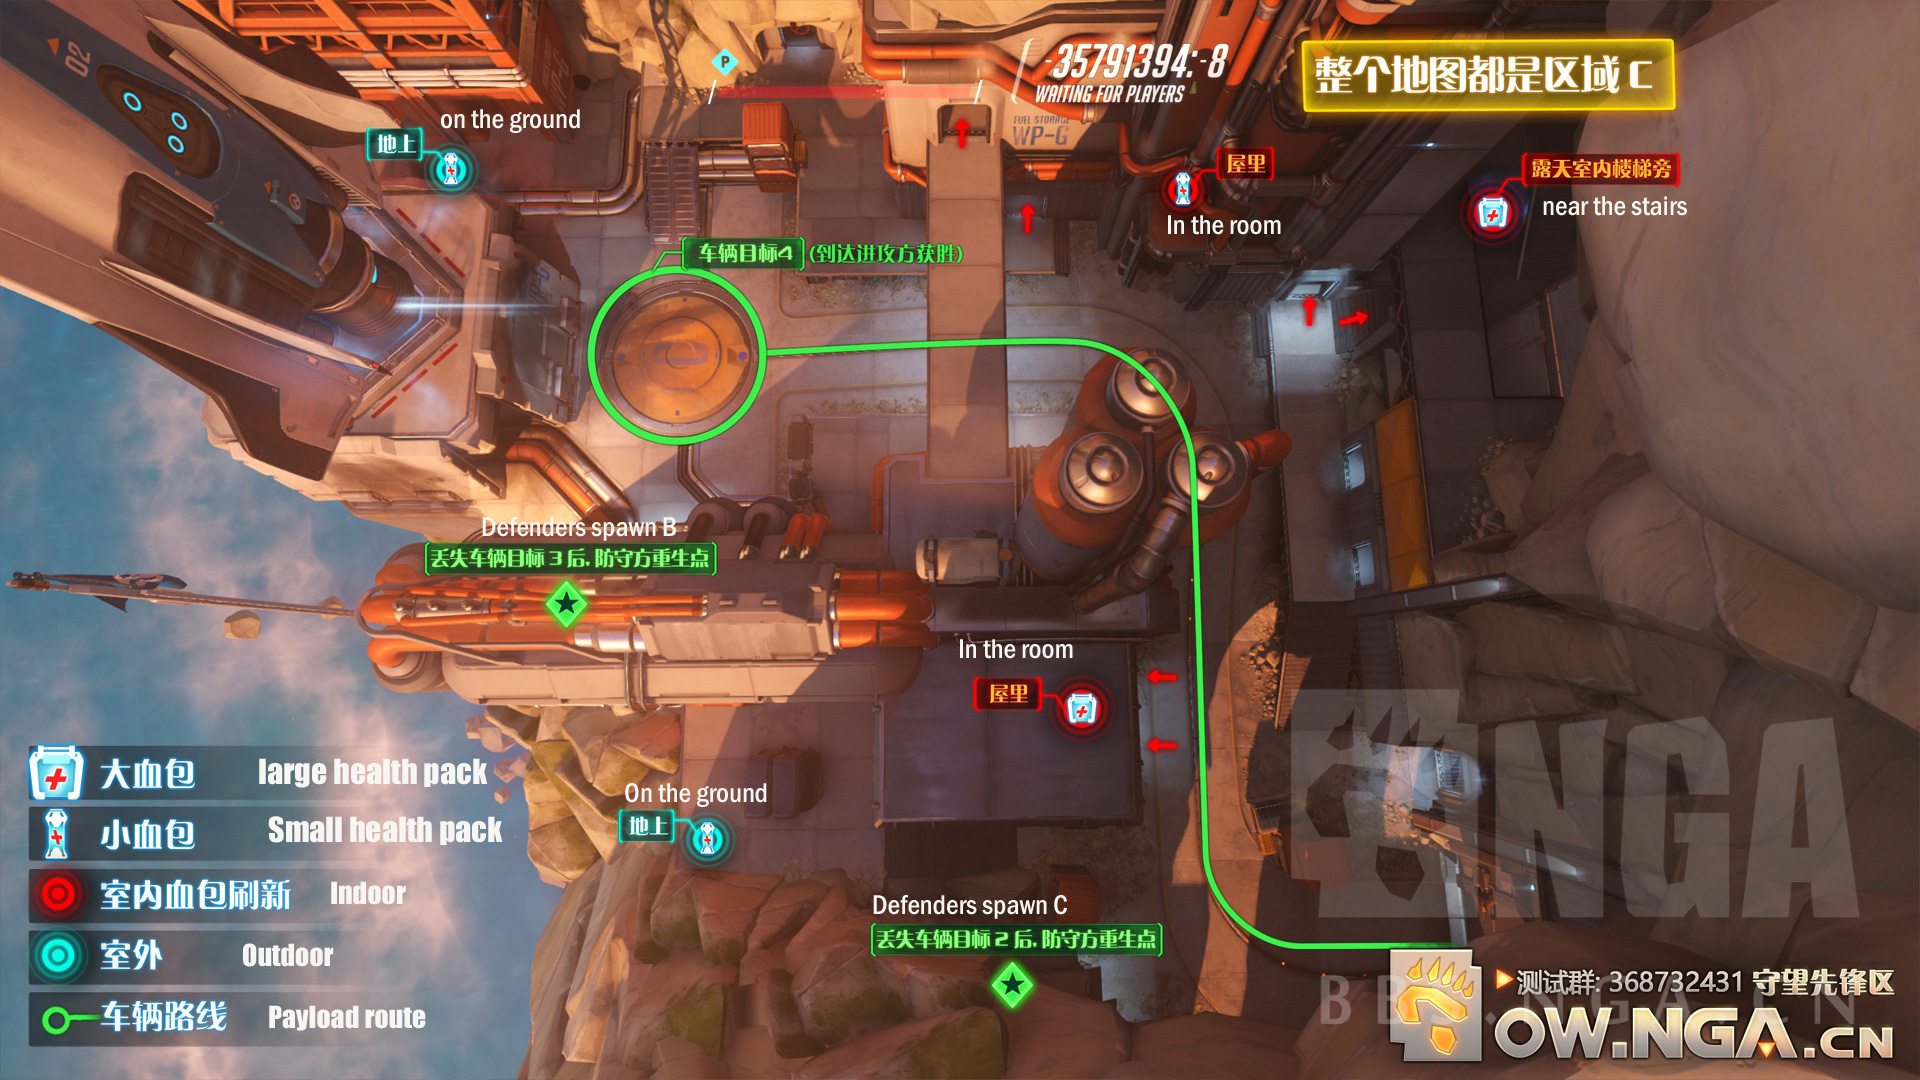 Watchpoint4